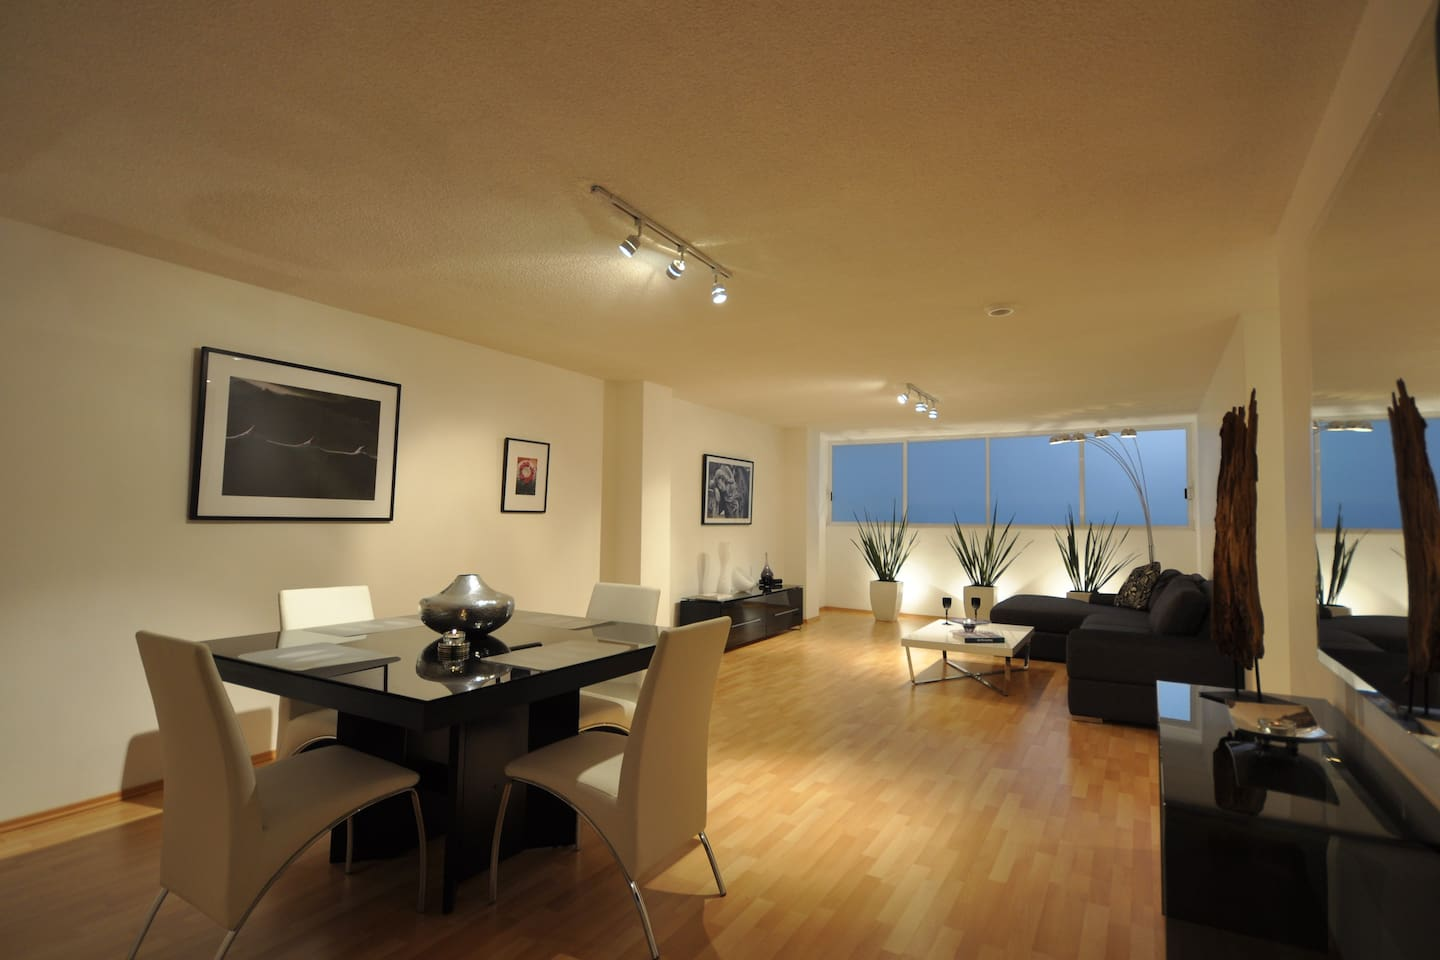 Loft-like layout of Living Room and Dining Room.